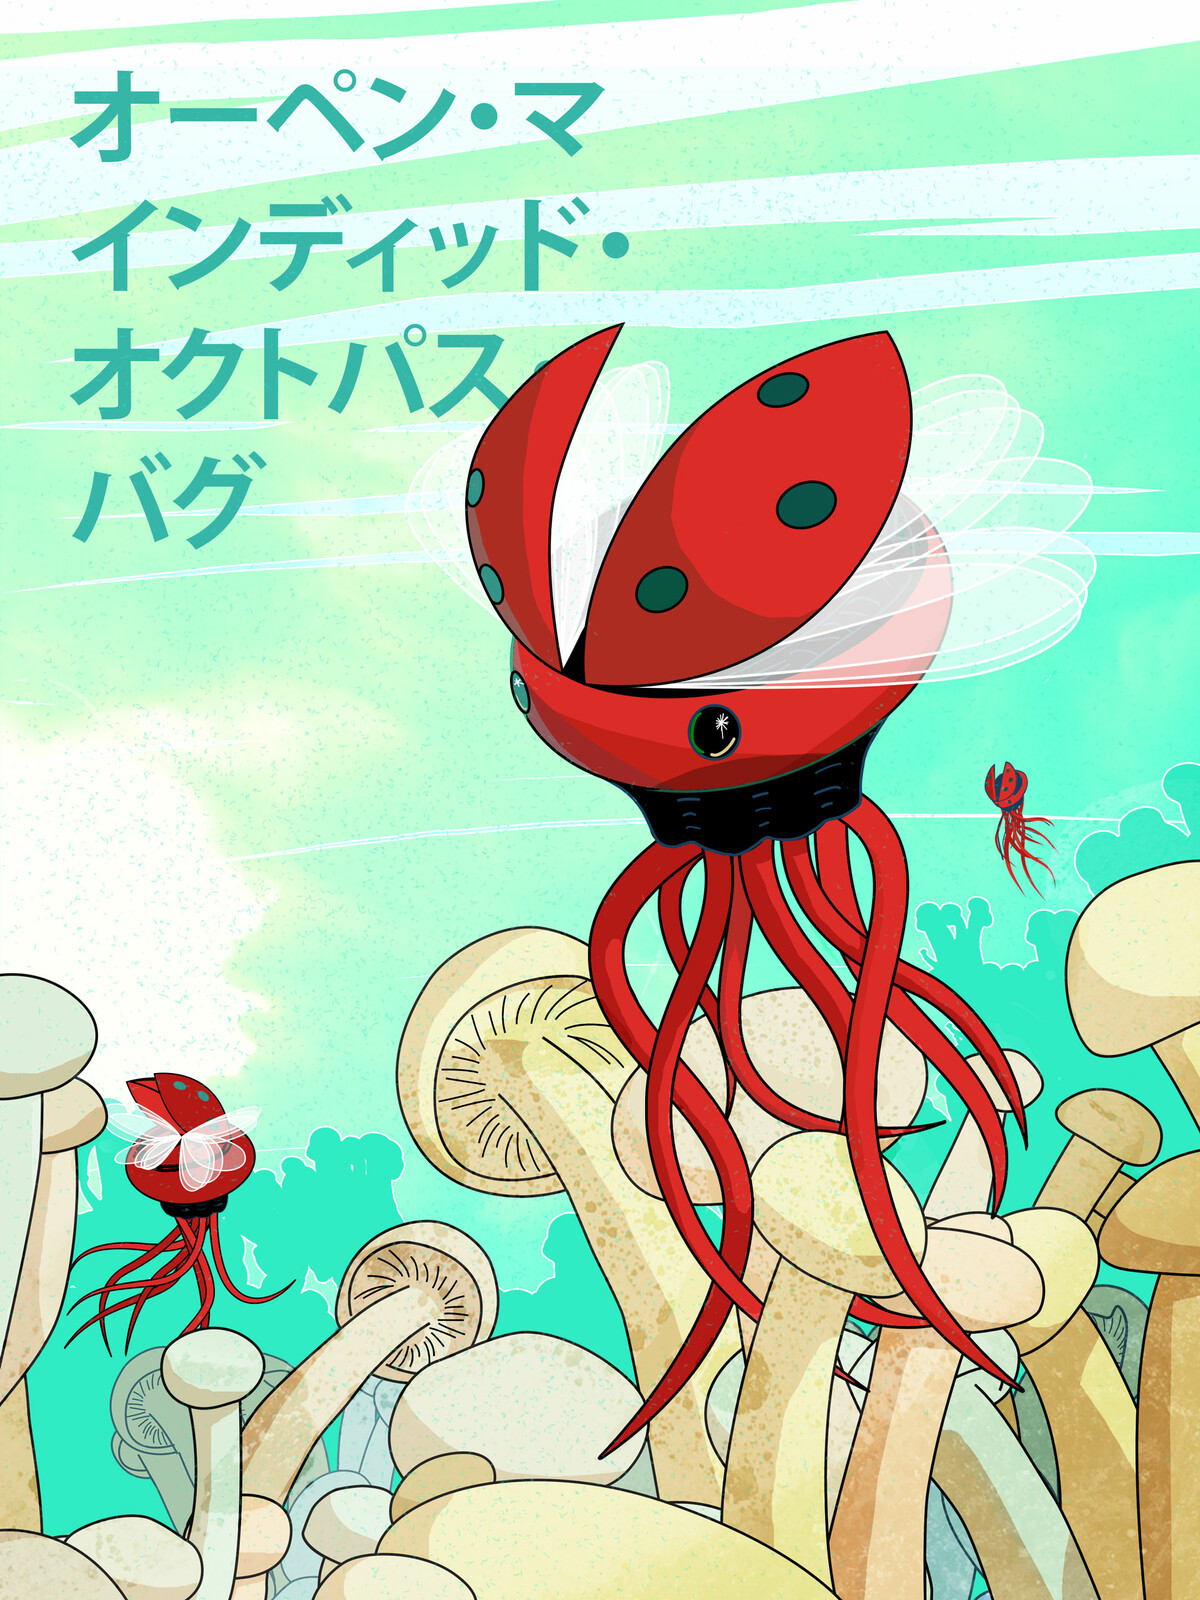 An open minded Octo-Bug